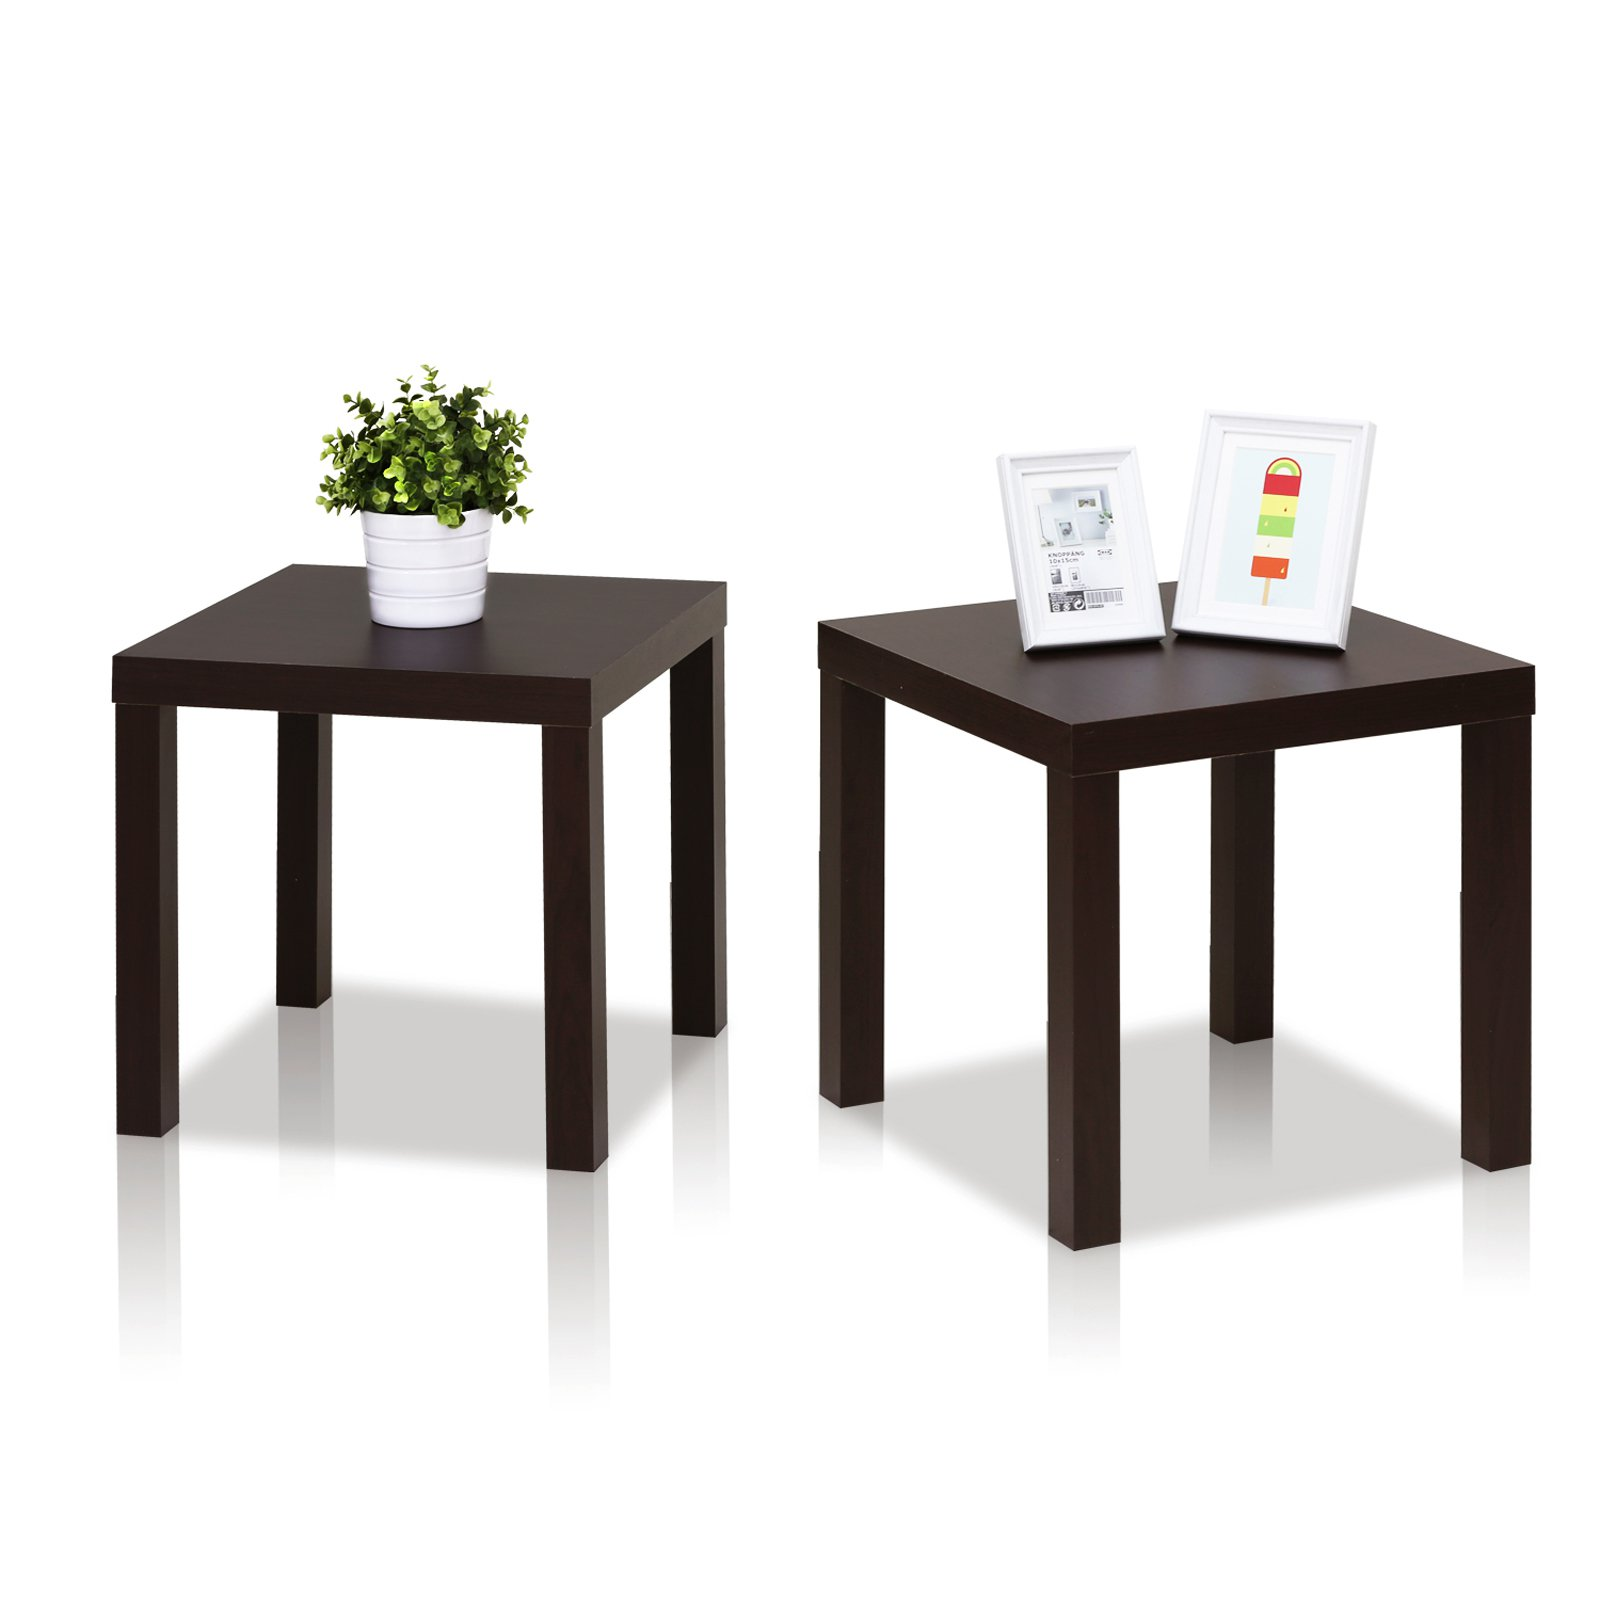 Furinno 2FRN001EX Classic Cubic End Table, Set of 2, Espresso by LIVEDITOR LIGHTING